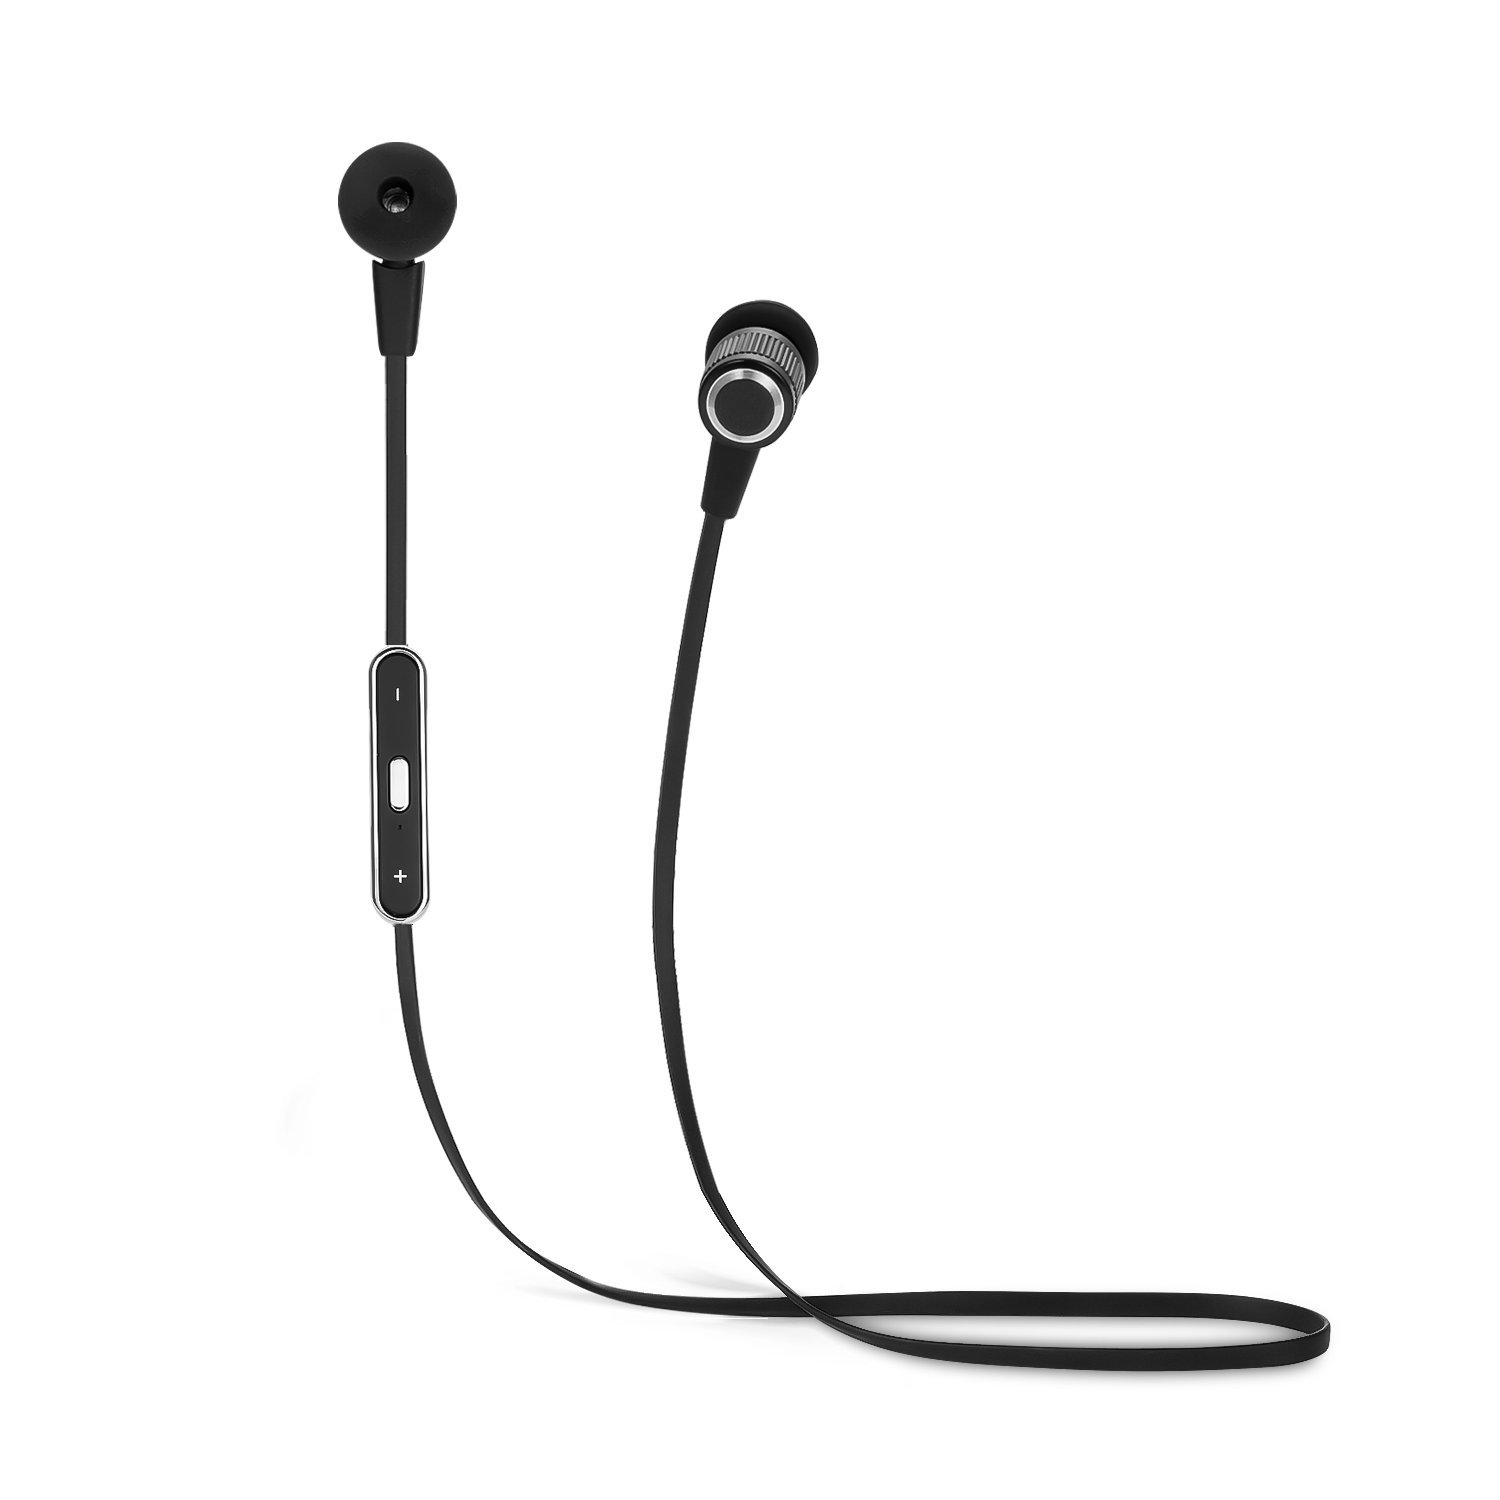 SUFUM In-ear Earbuds Wireless Bluetooth In-ear Earphones Sport Headphones (Black)